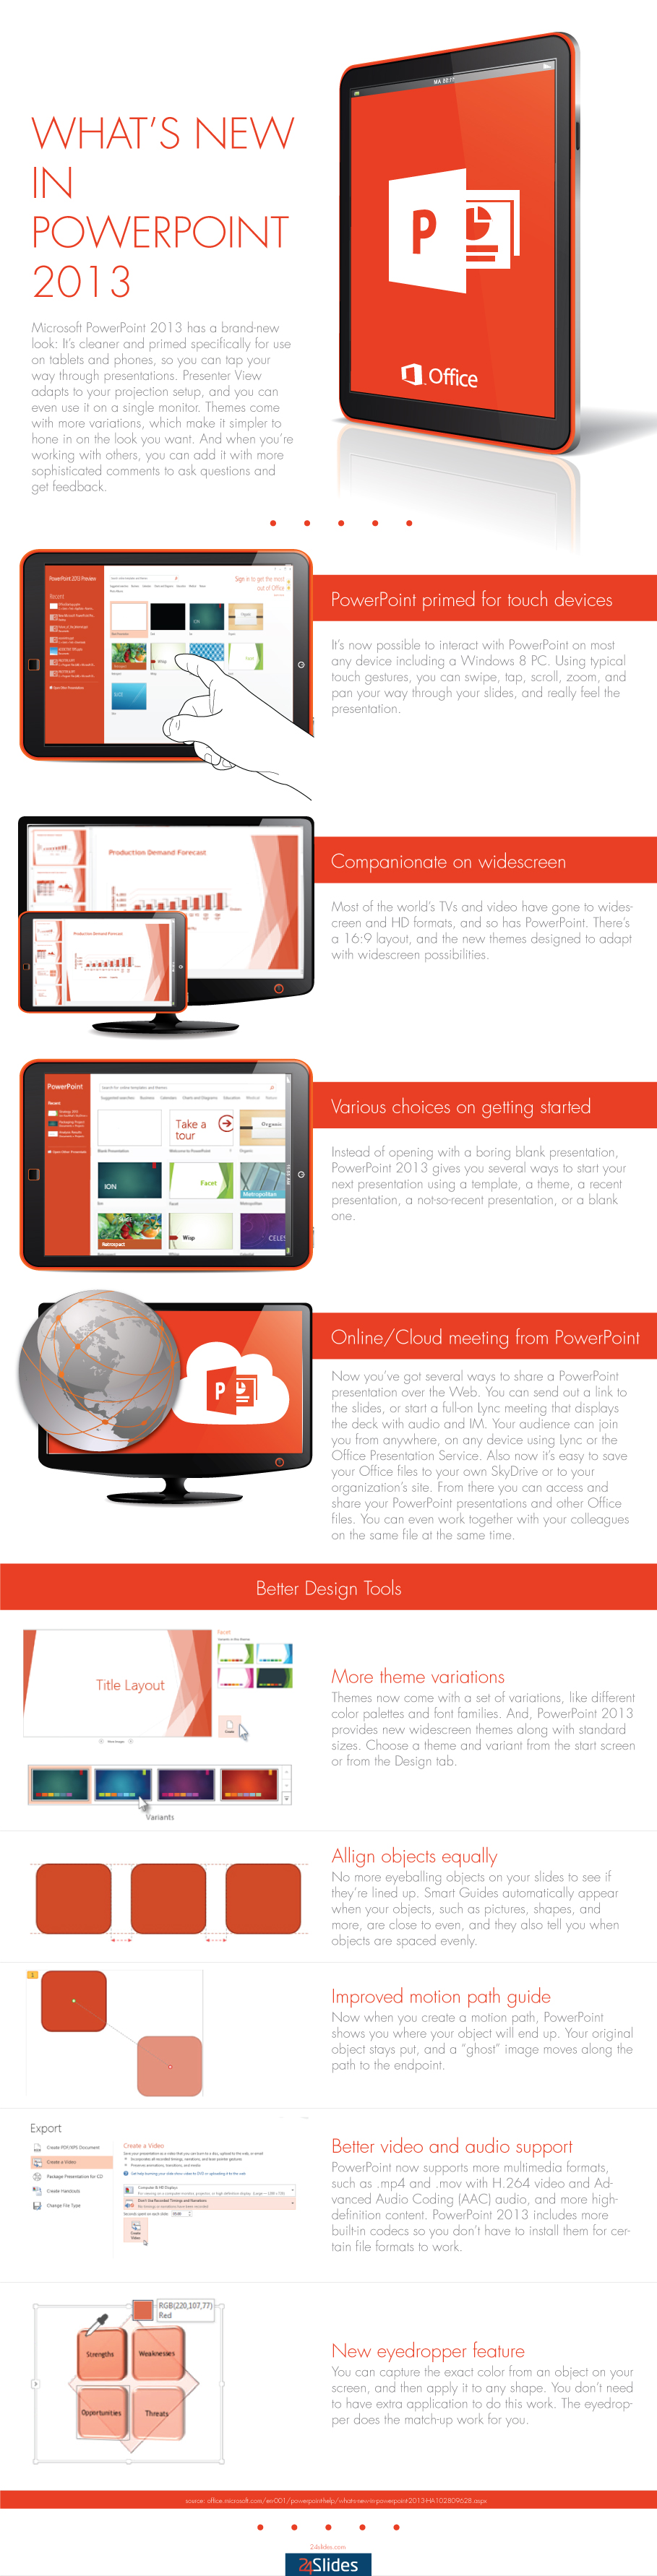 [INFOGRAPHIC] What's New in PowerPoint 2013 - BLOG